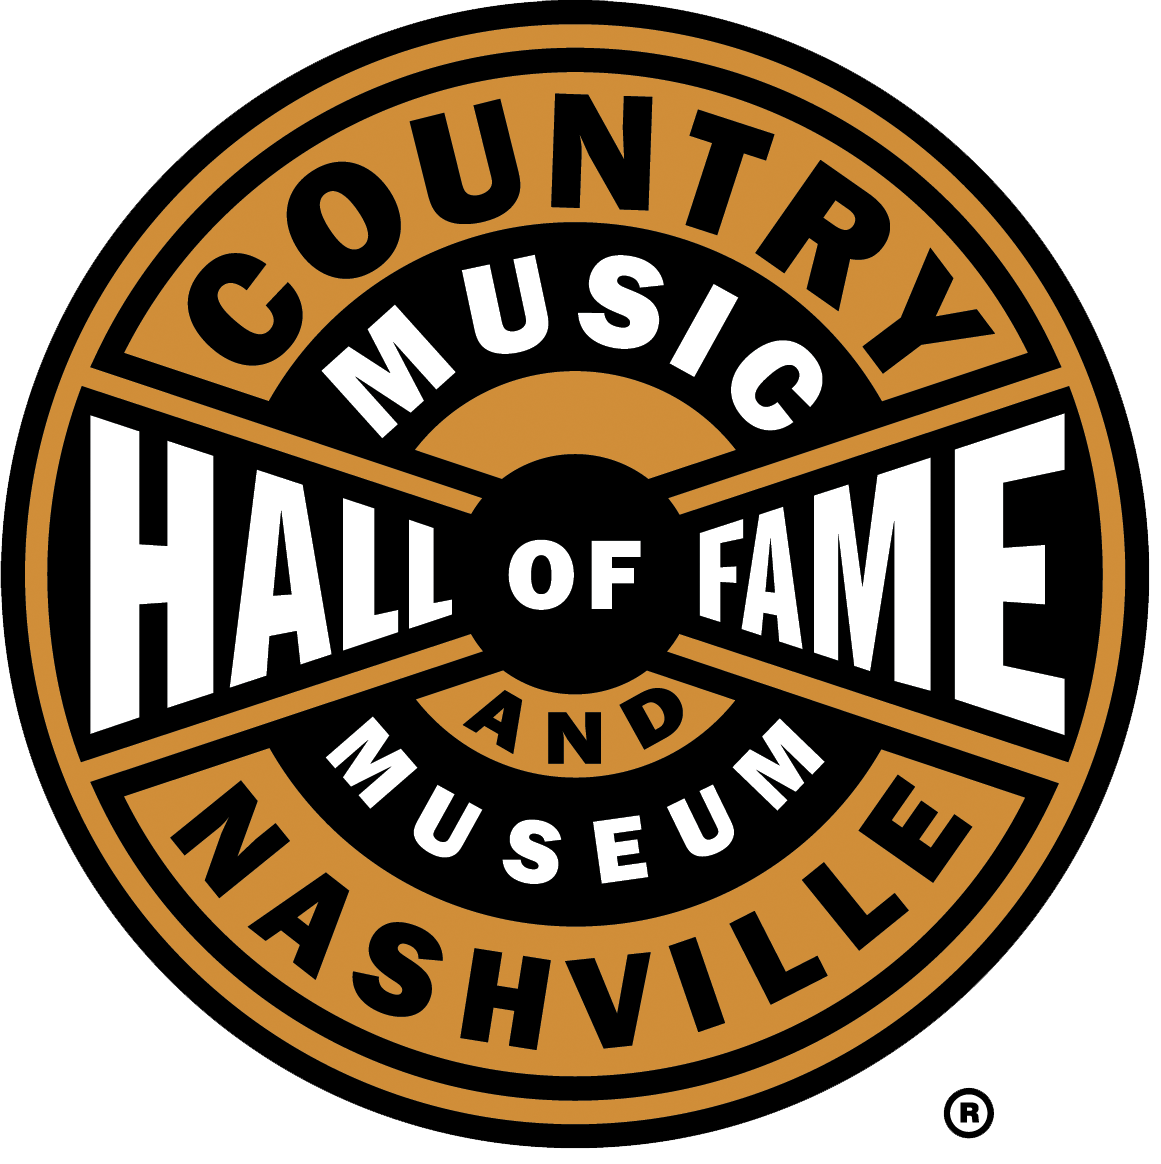 country music hall of fame and museum wikipedia. Black Bedroom Furniture Sets. Home Design Ideas